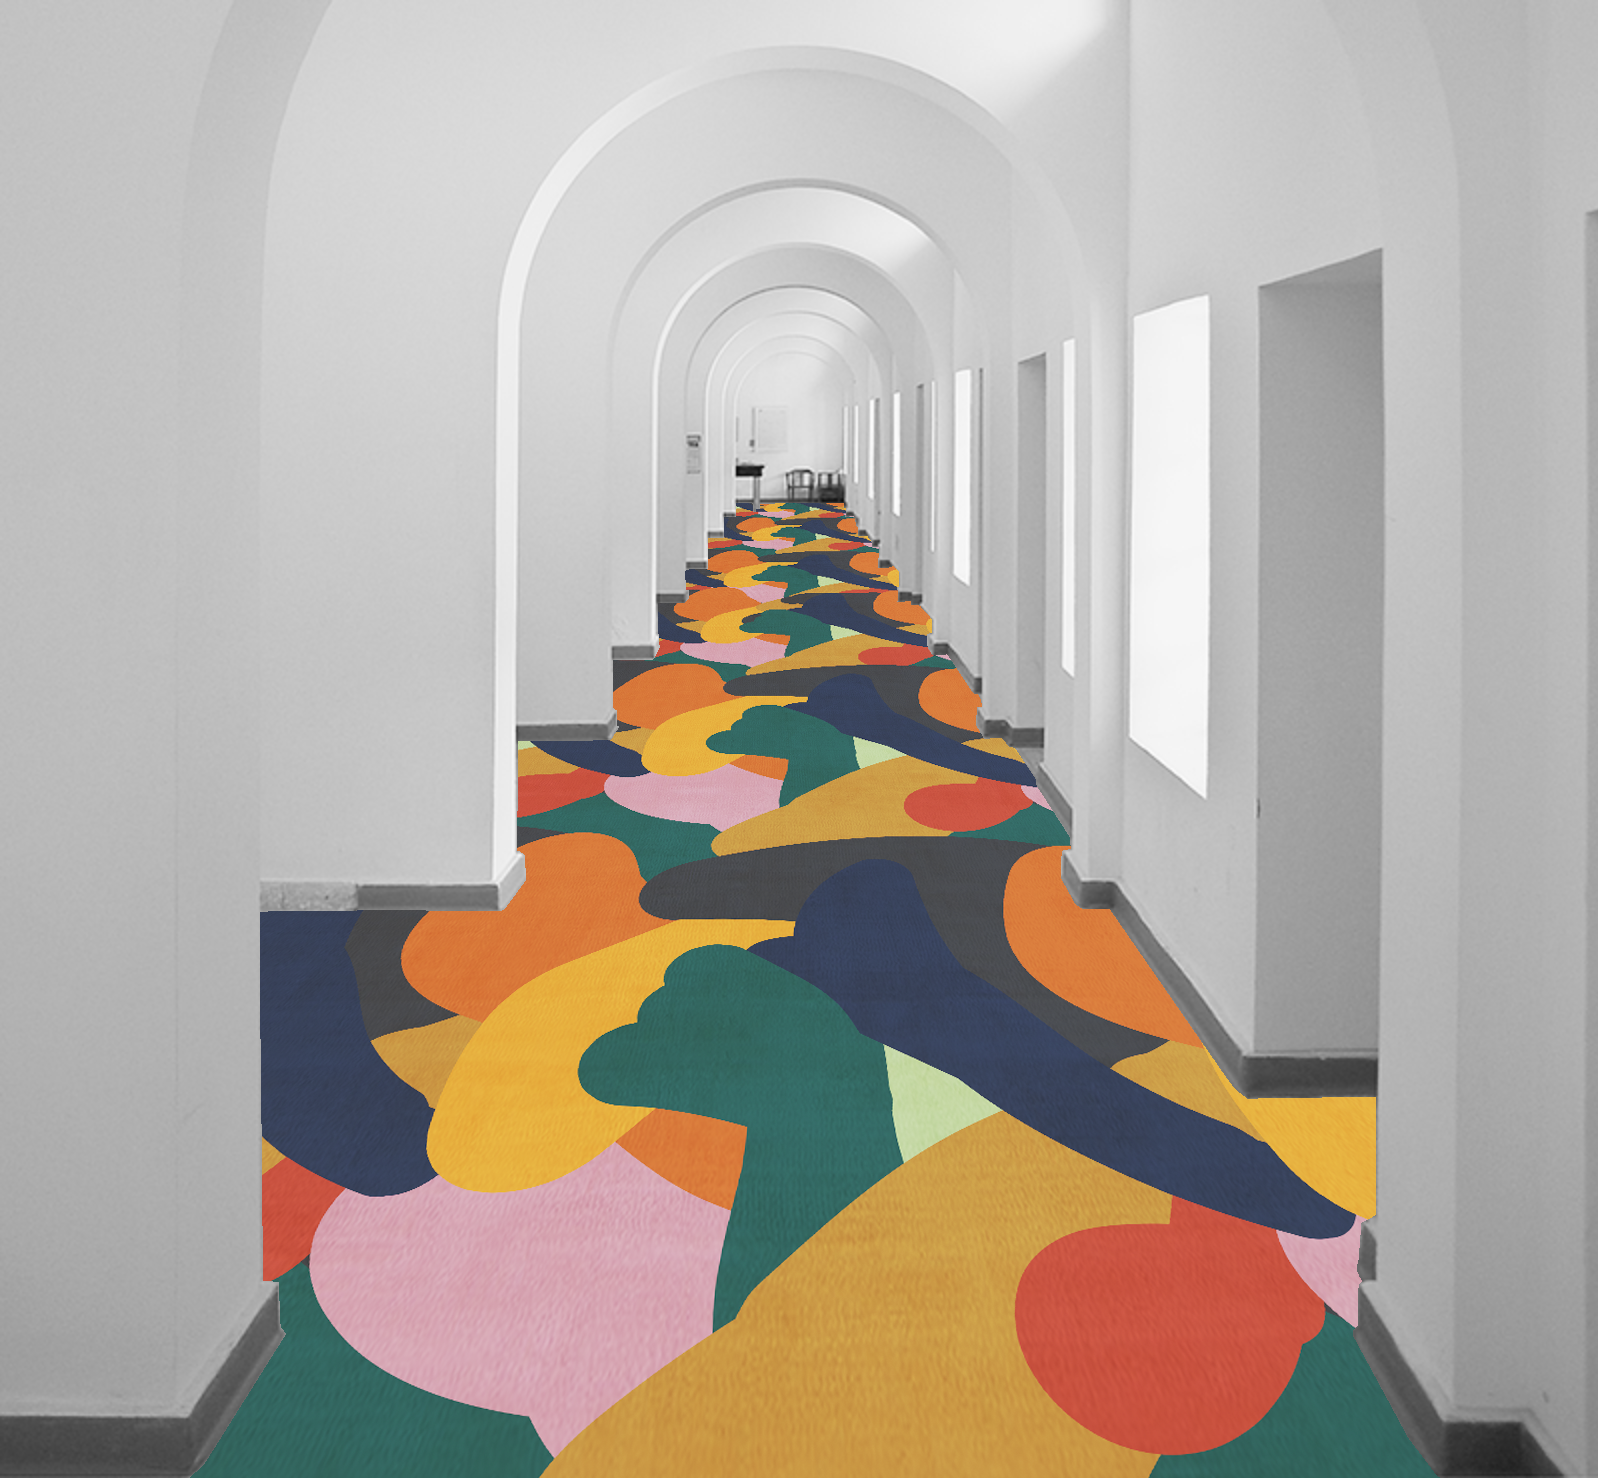 P aul Gauguin's ' Fatata te Miti' (By the Sea) inspired residential rug design. Digitally overlaid on an image of a hospitality hallway.